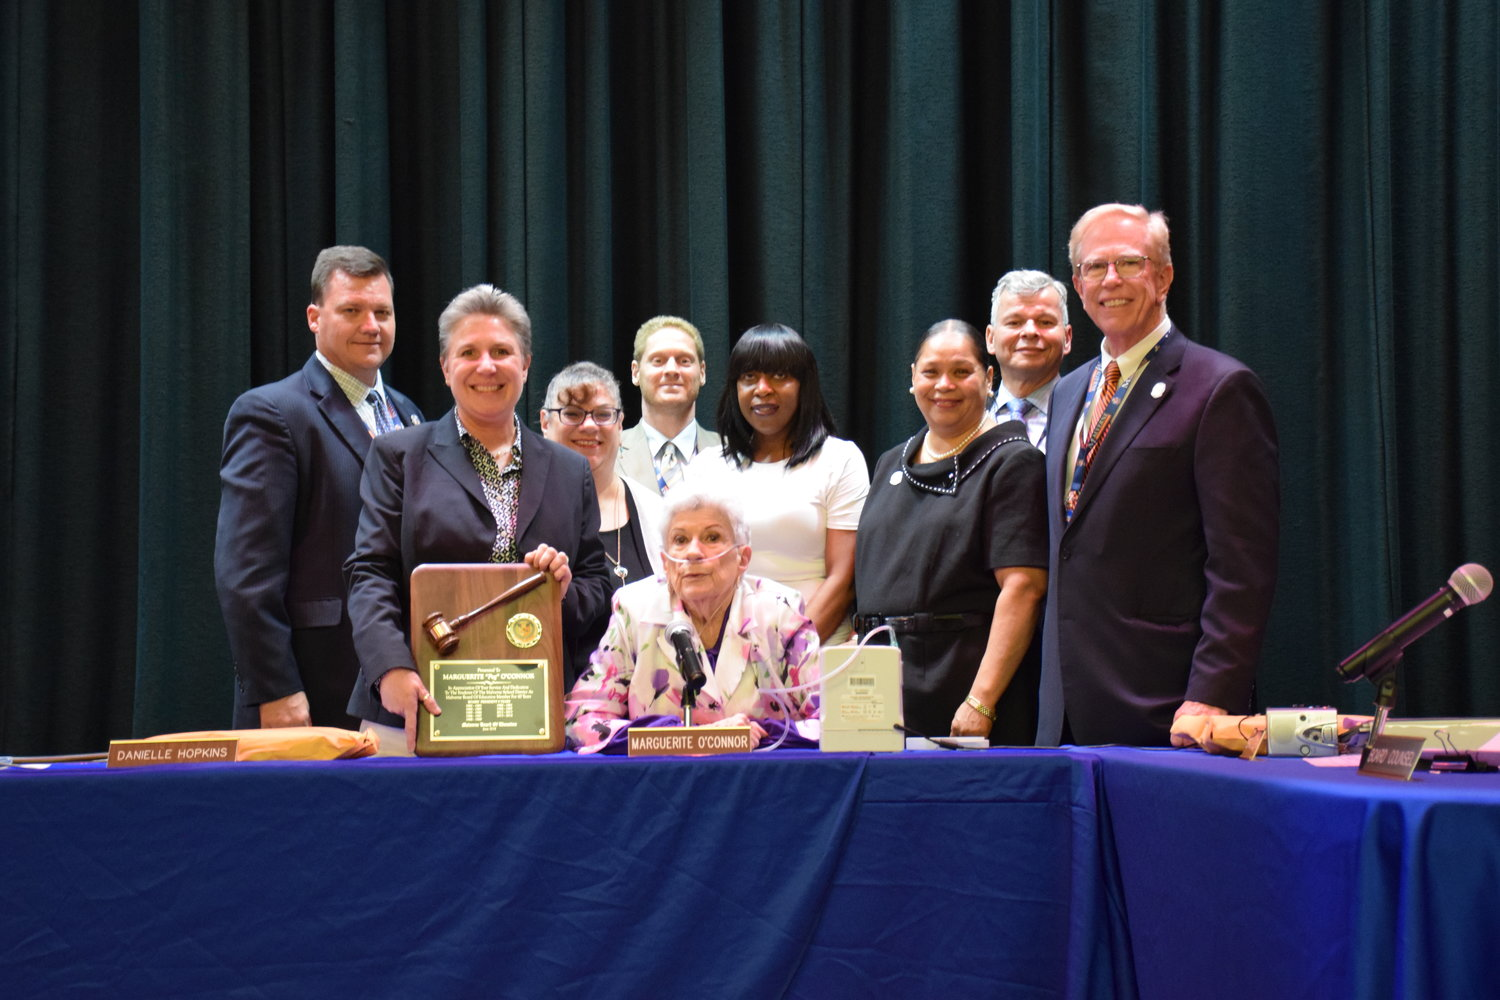 Courtesy Malverne School District